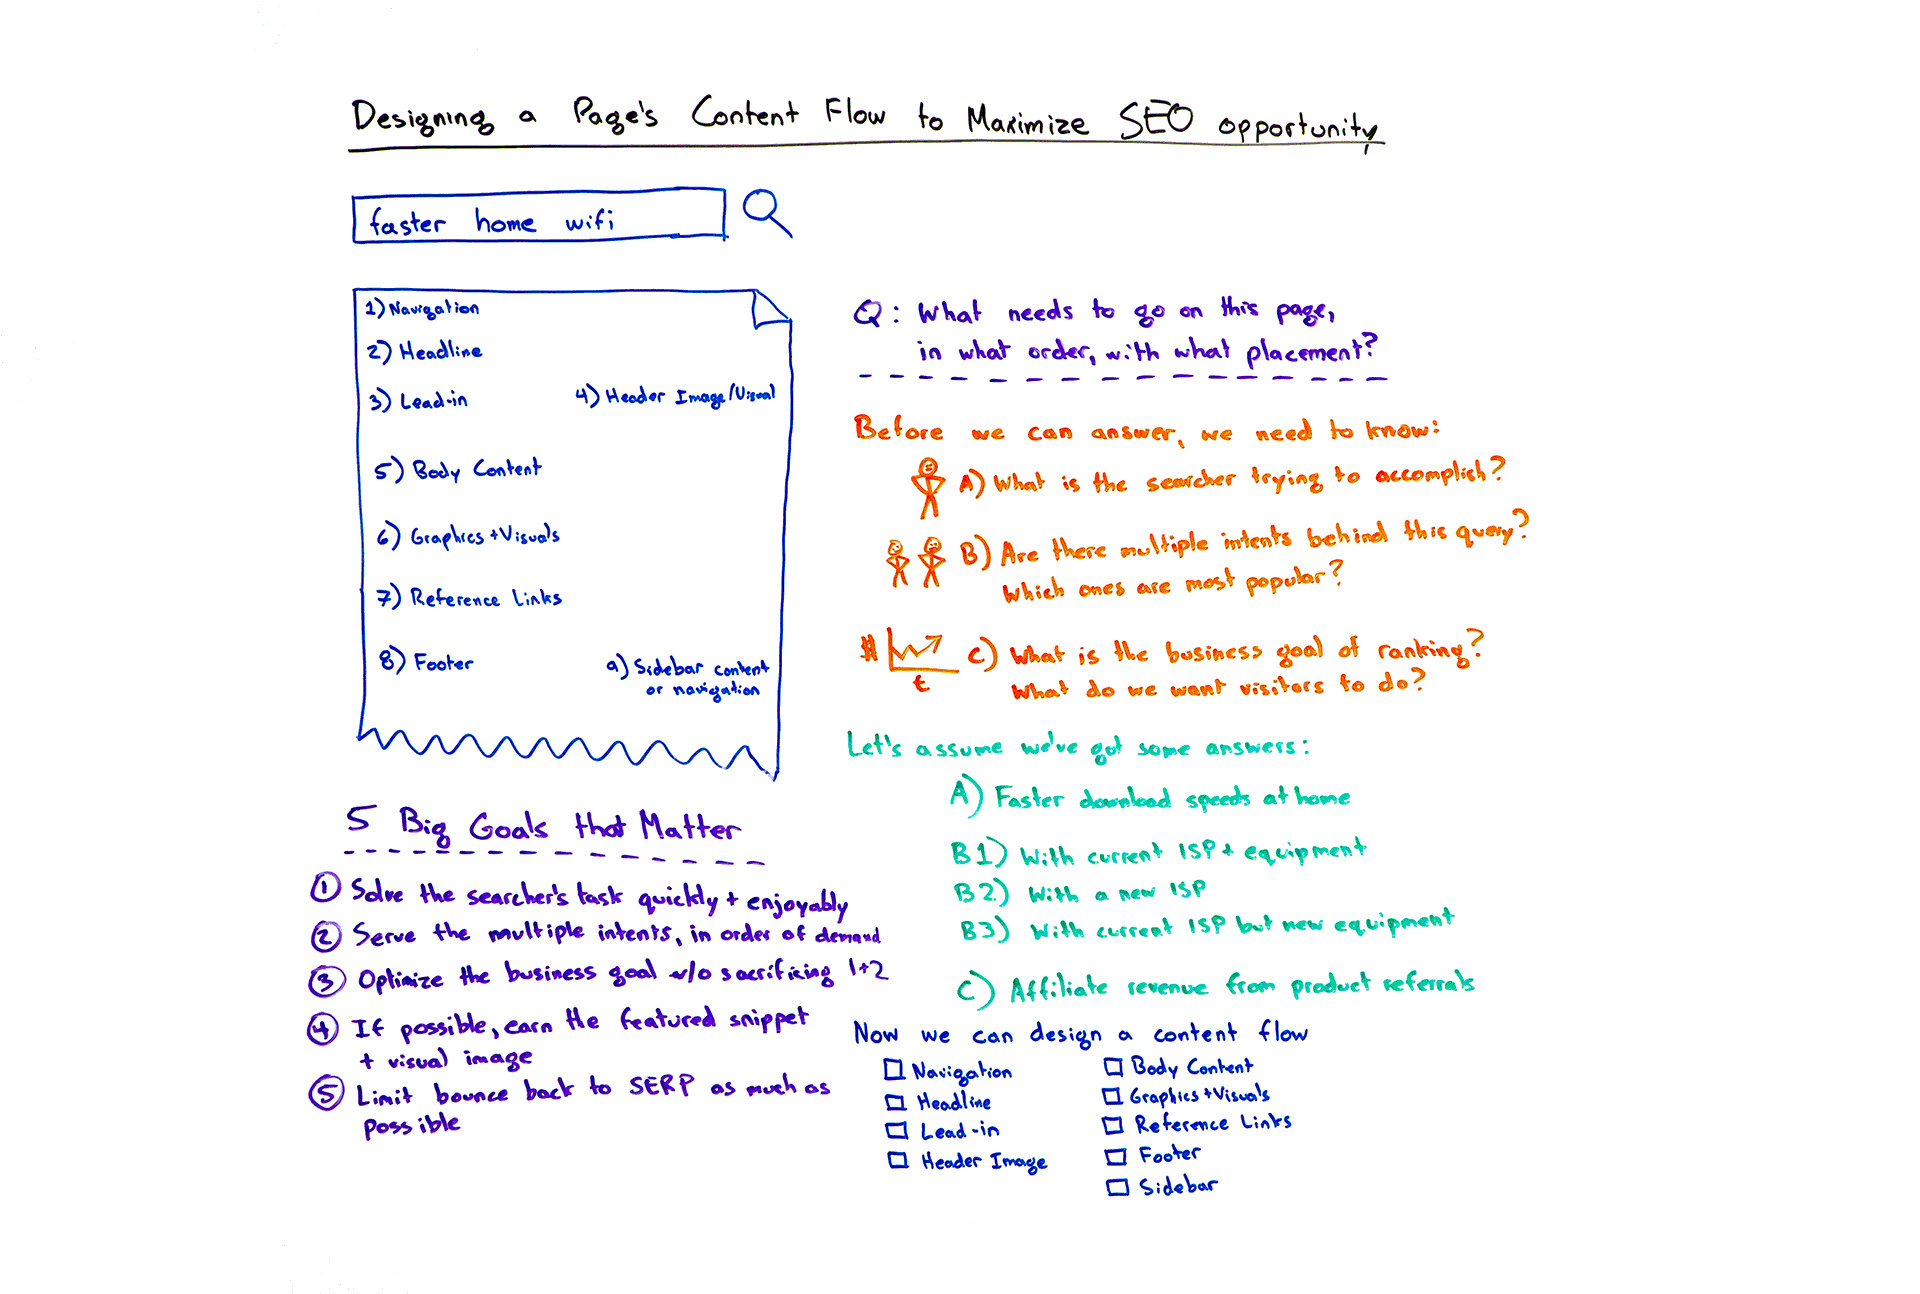 https://d2v4zi8pl64nxt.cloudfront.net/designing-a-page-s-content-flow-to-maximize-seo-opportunity-whiteboard-friday/5a209b654369e7.88708807.jpg